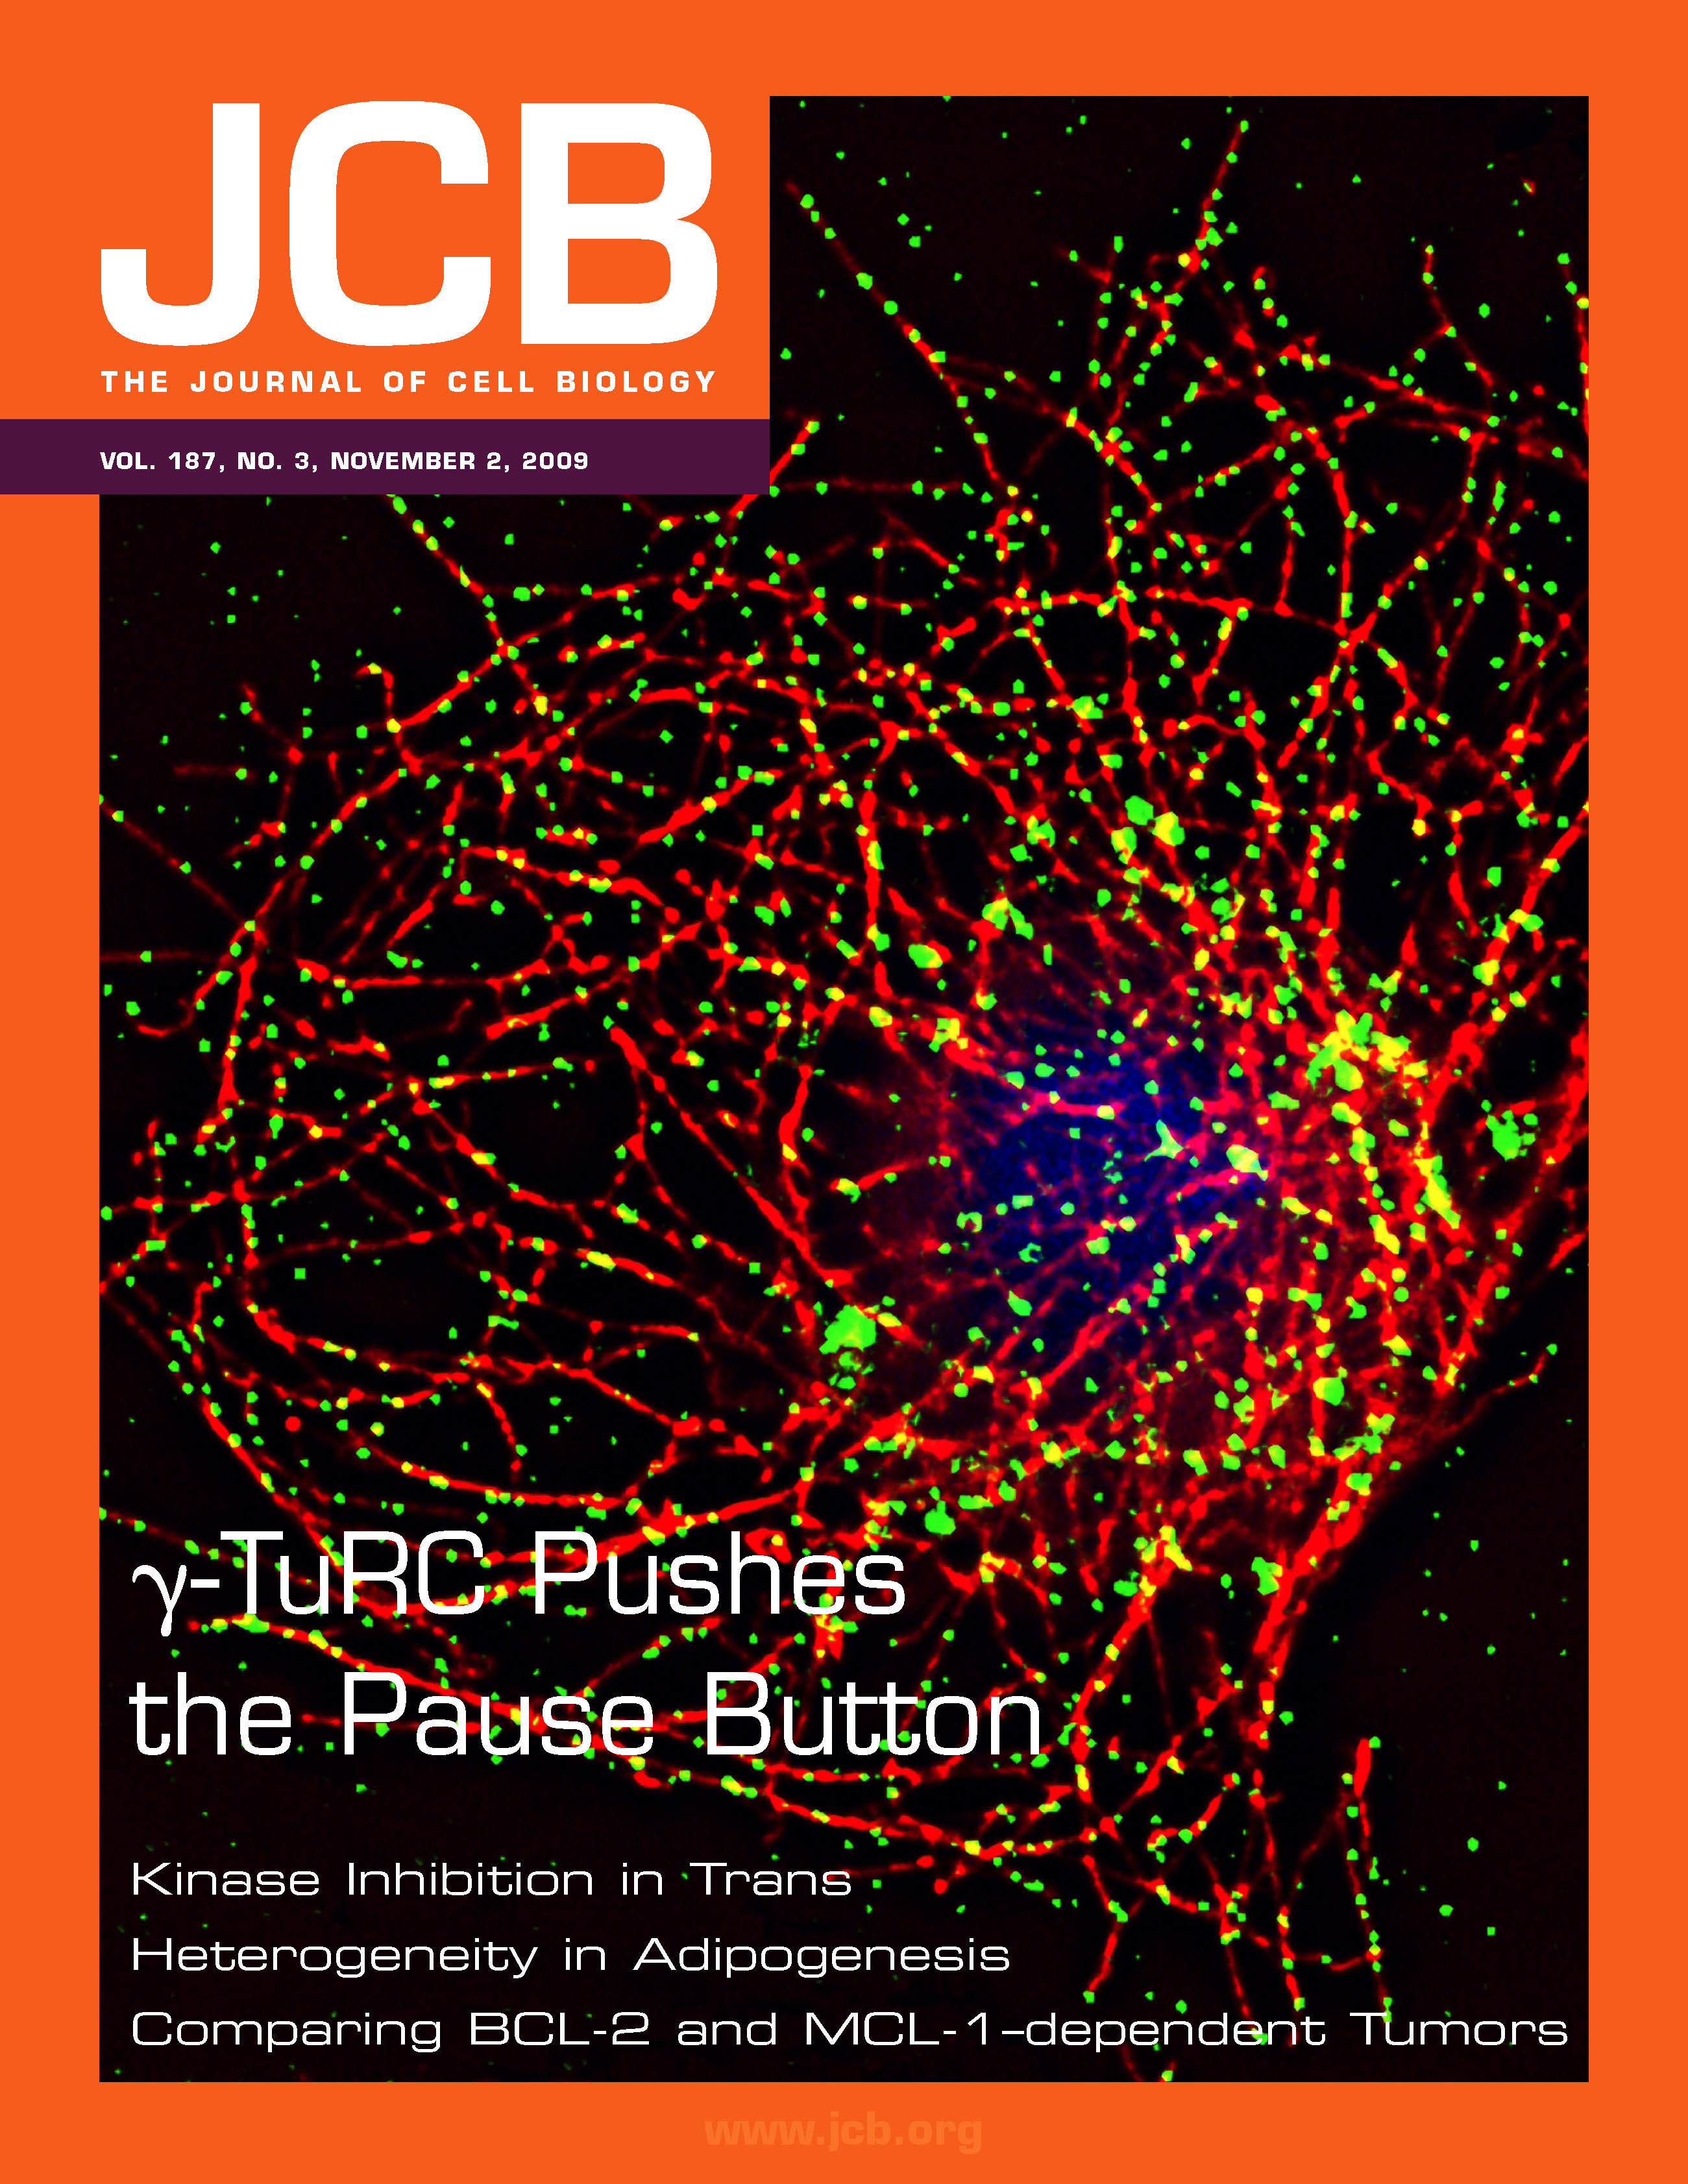 An issue of the Journal of Cell Biology